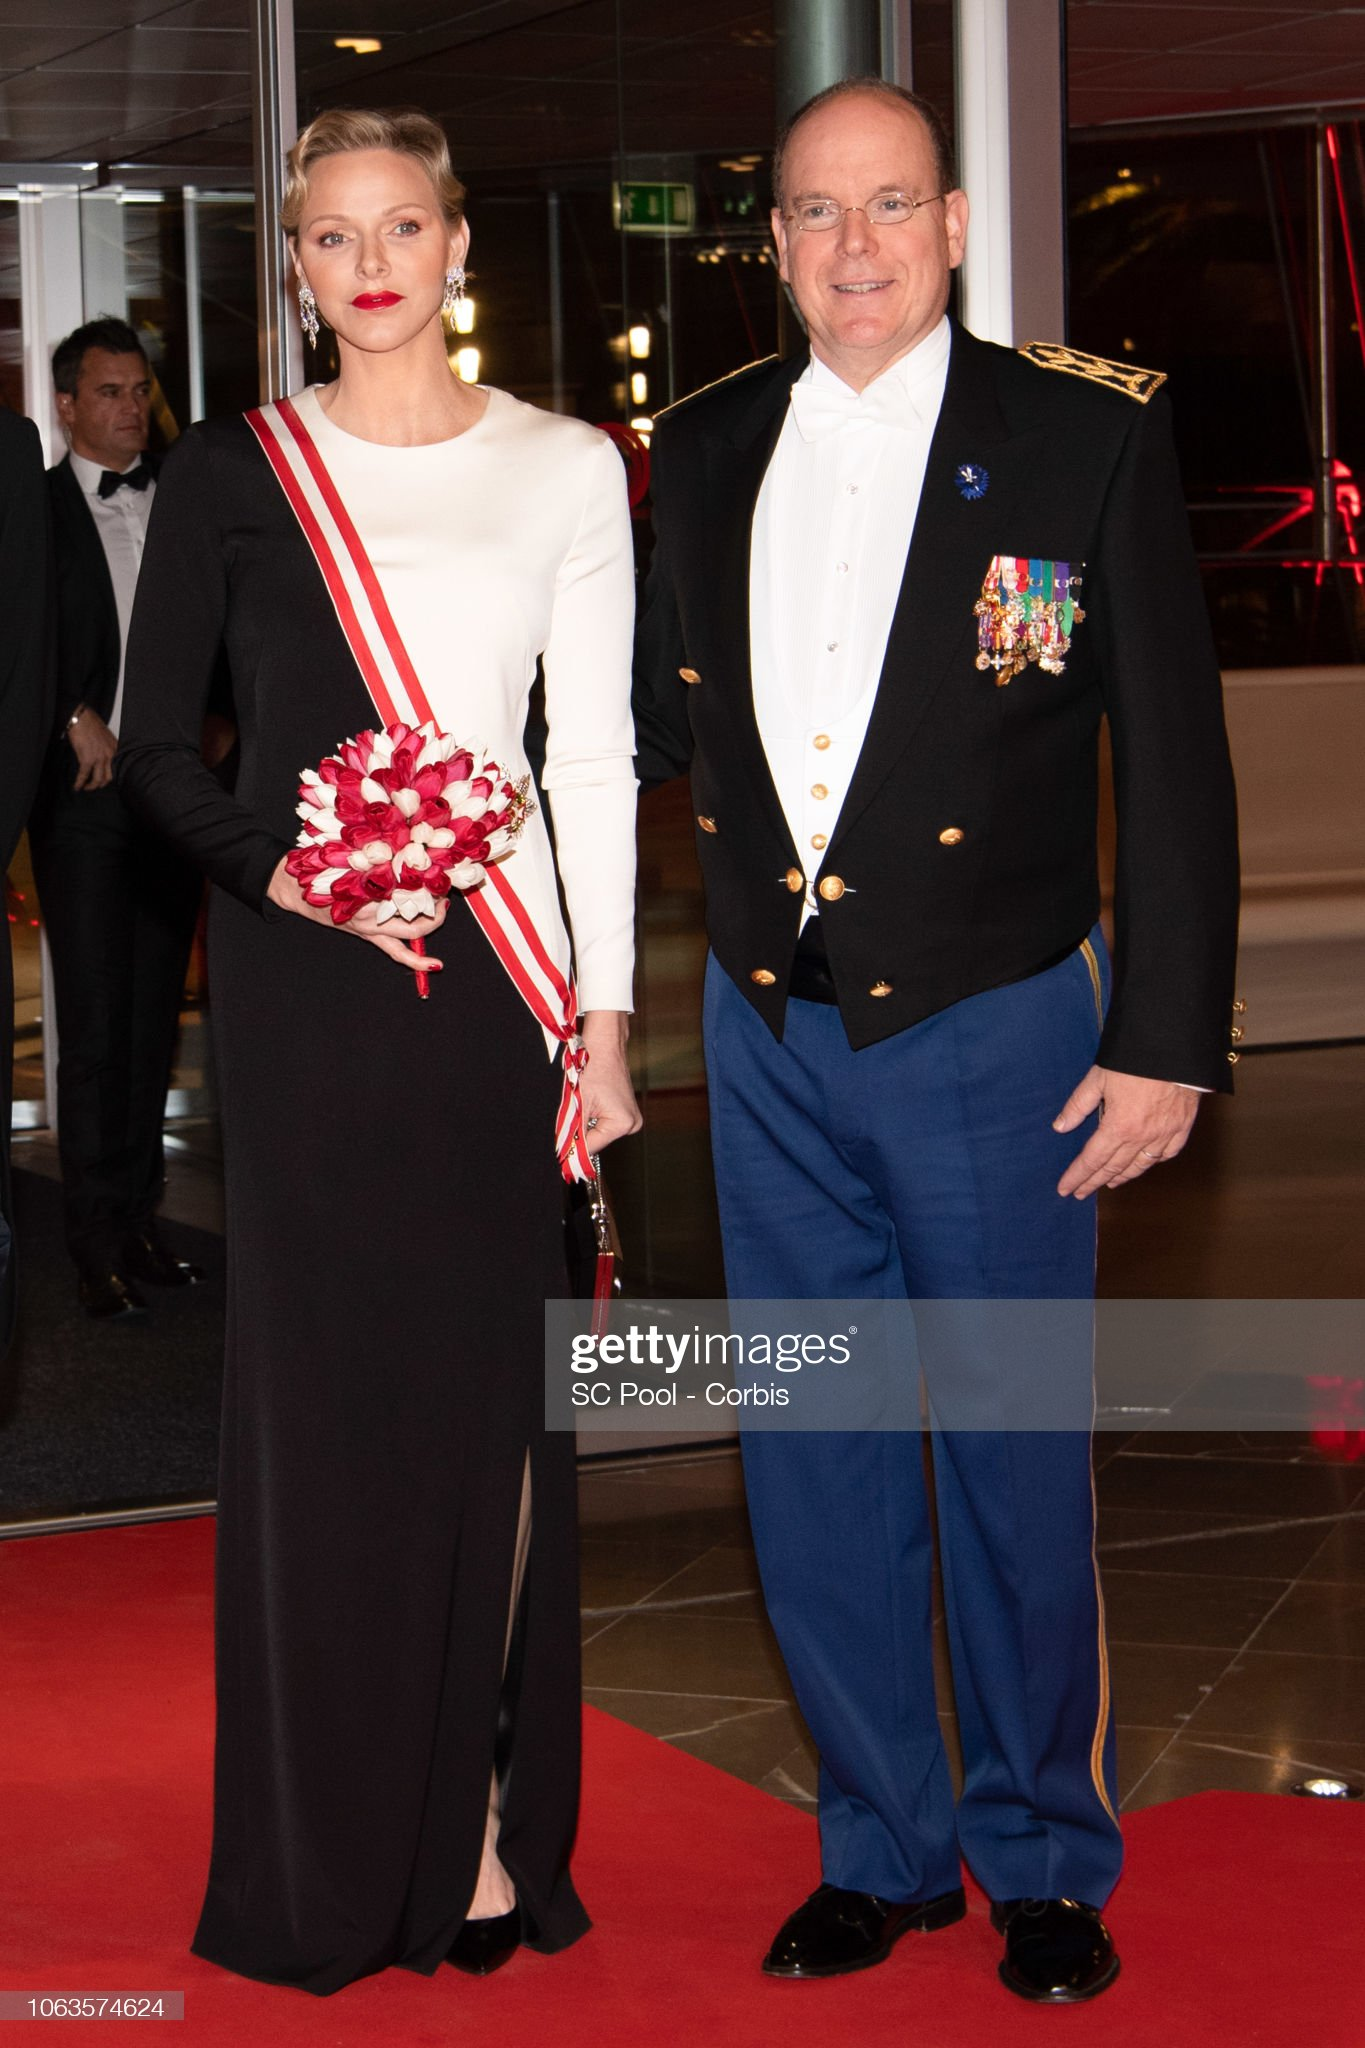 Monaco National Day 2018 : News Photo